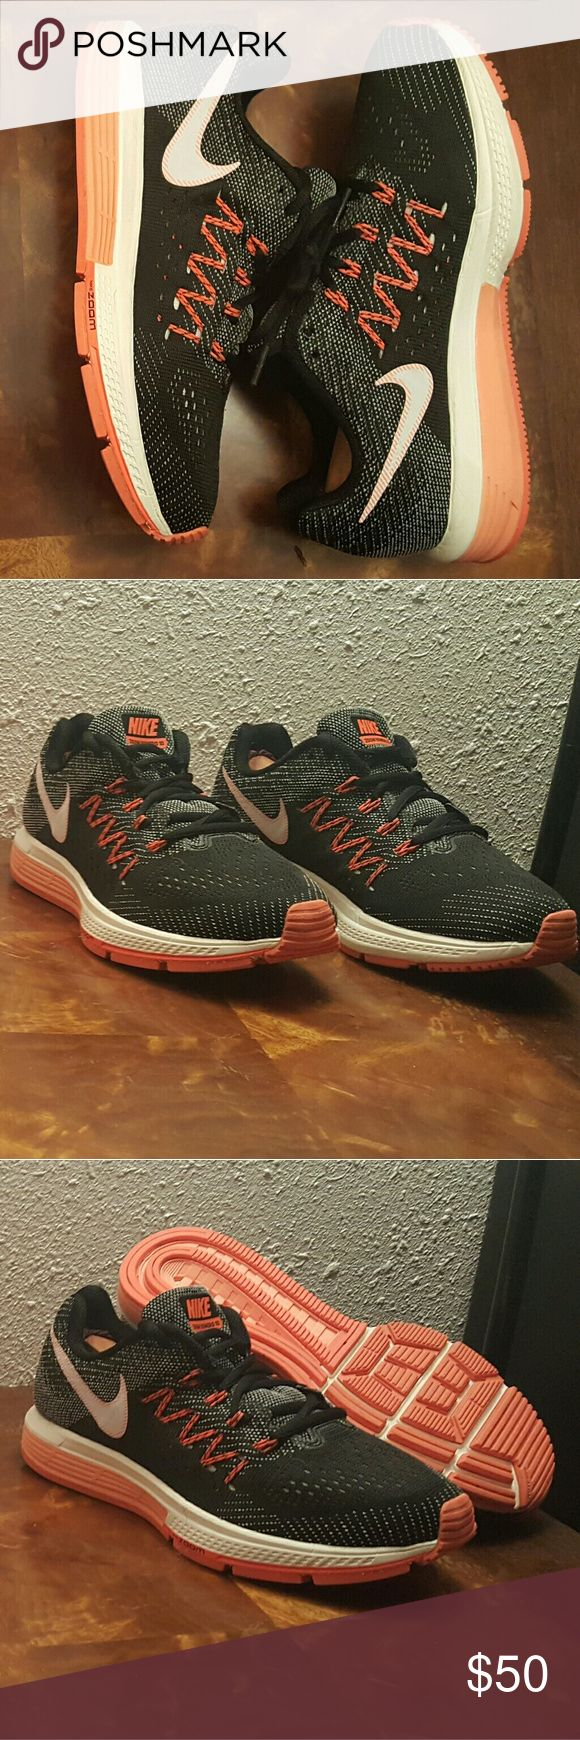 Women's Nike vomero 10 Women's Nike vomero 10 size 8 excellent condition Nike Shoes Athletic Shoes